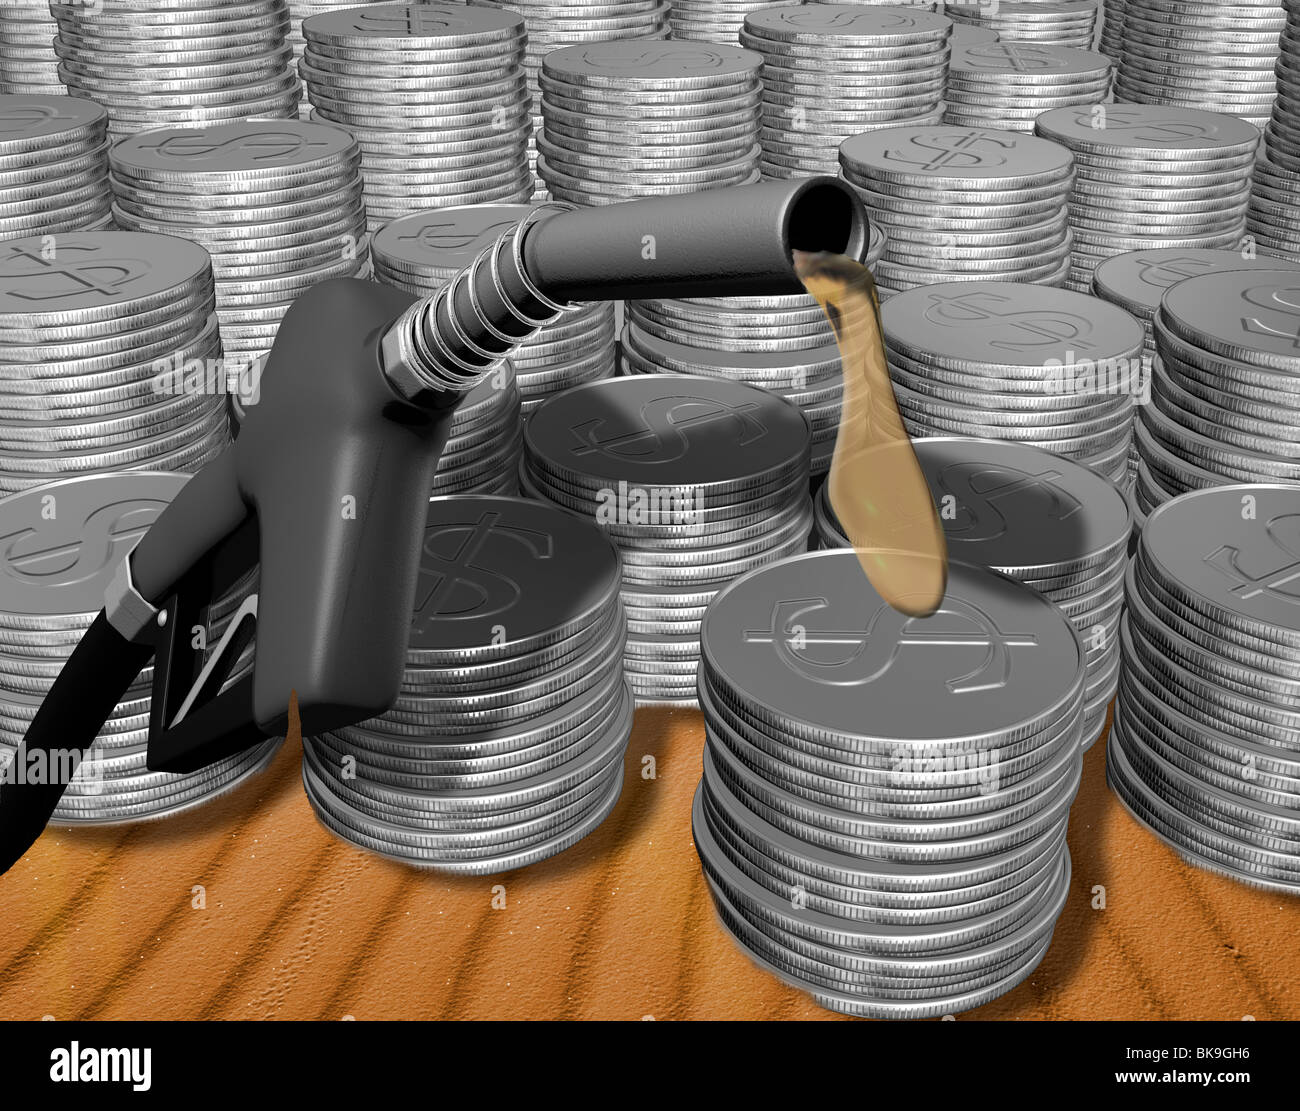 Oil Coins dollar by Mike Agliolo, computer graphics - Stock Image